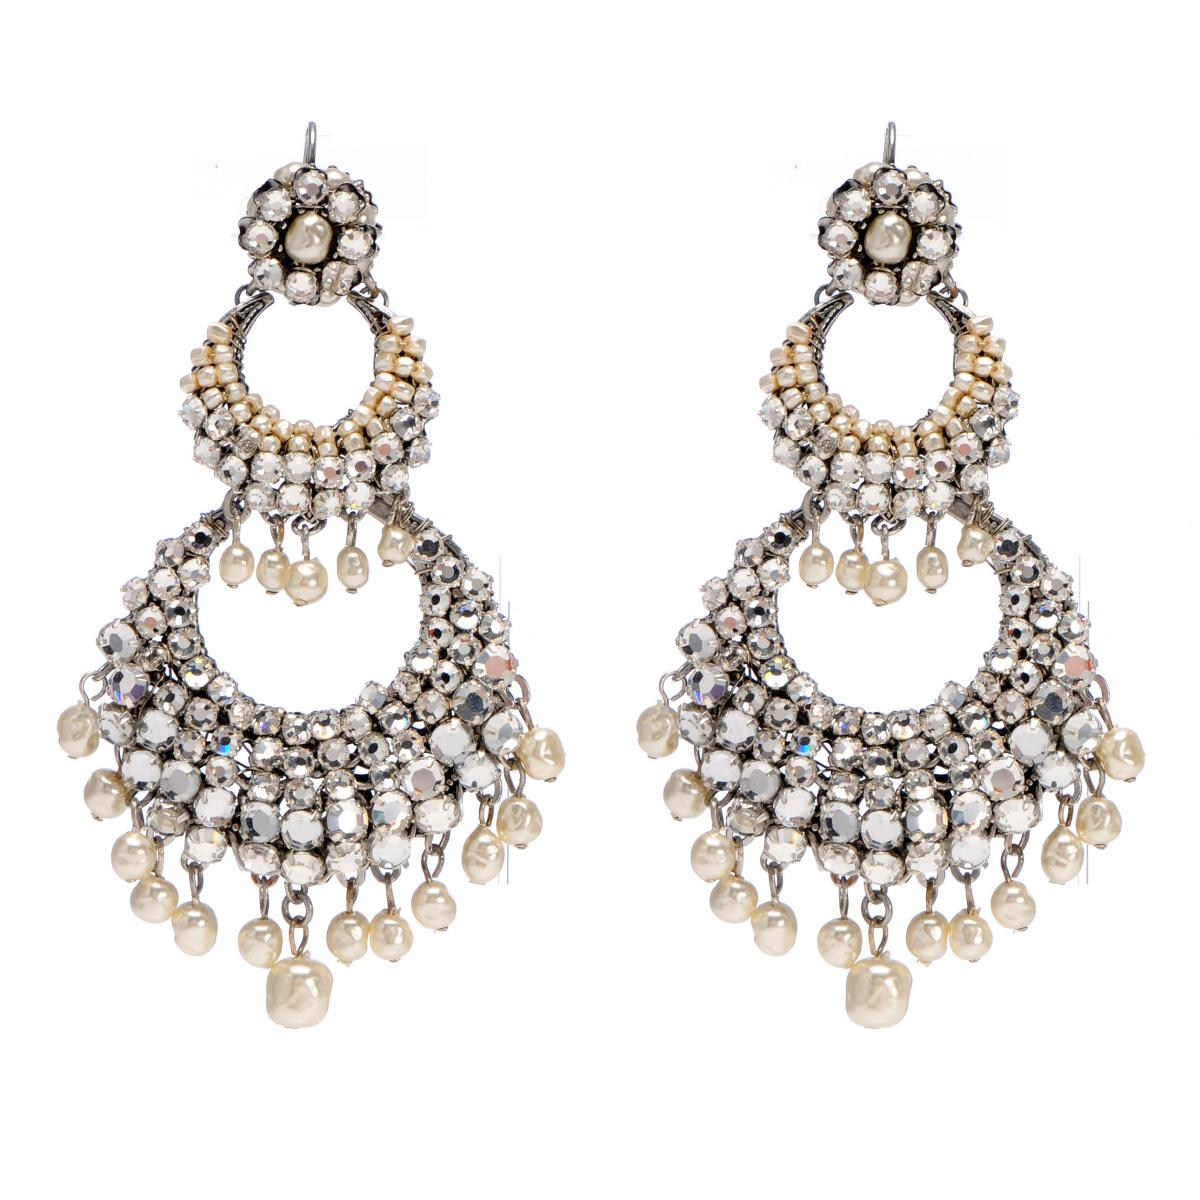 Earrings for Women. Accentuate any outfit with Earrings from Kohl's. We offer a wide variety of Earrings for Women, and are sure to have an option that will be part of your jewelry collection forever.